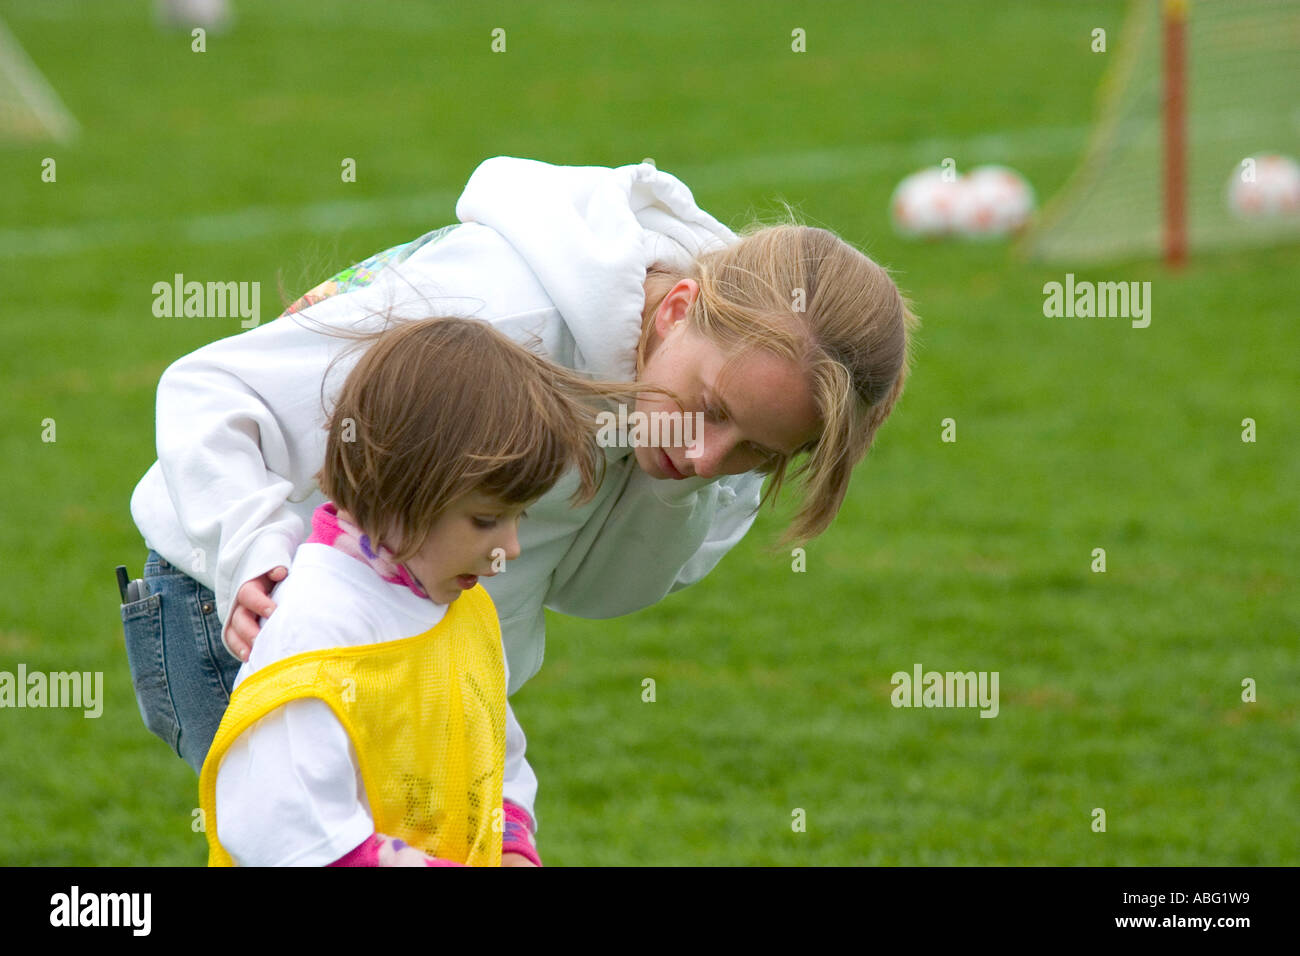 Mom Talking To Soccer Playing Daughter At The Game Age 22 And 4 Stock Photo Alamy